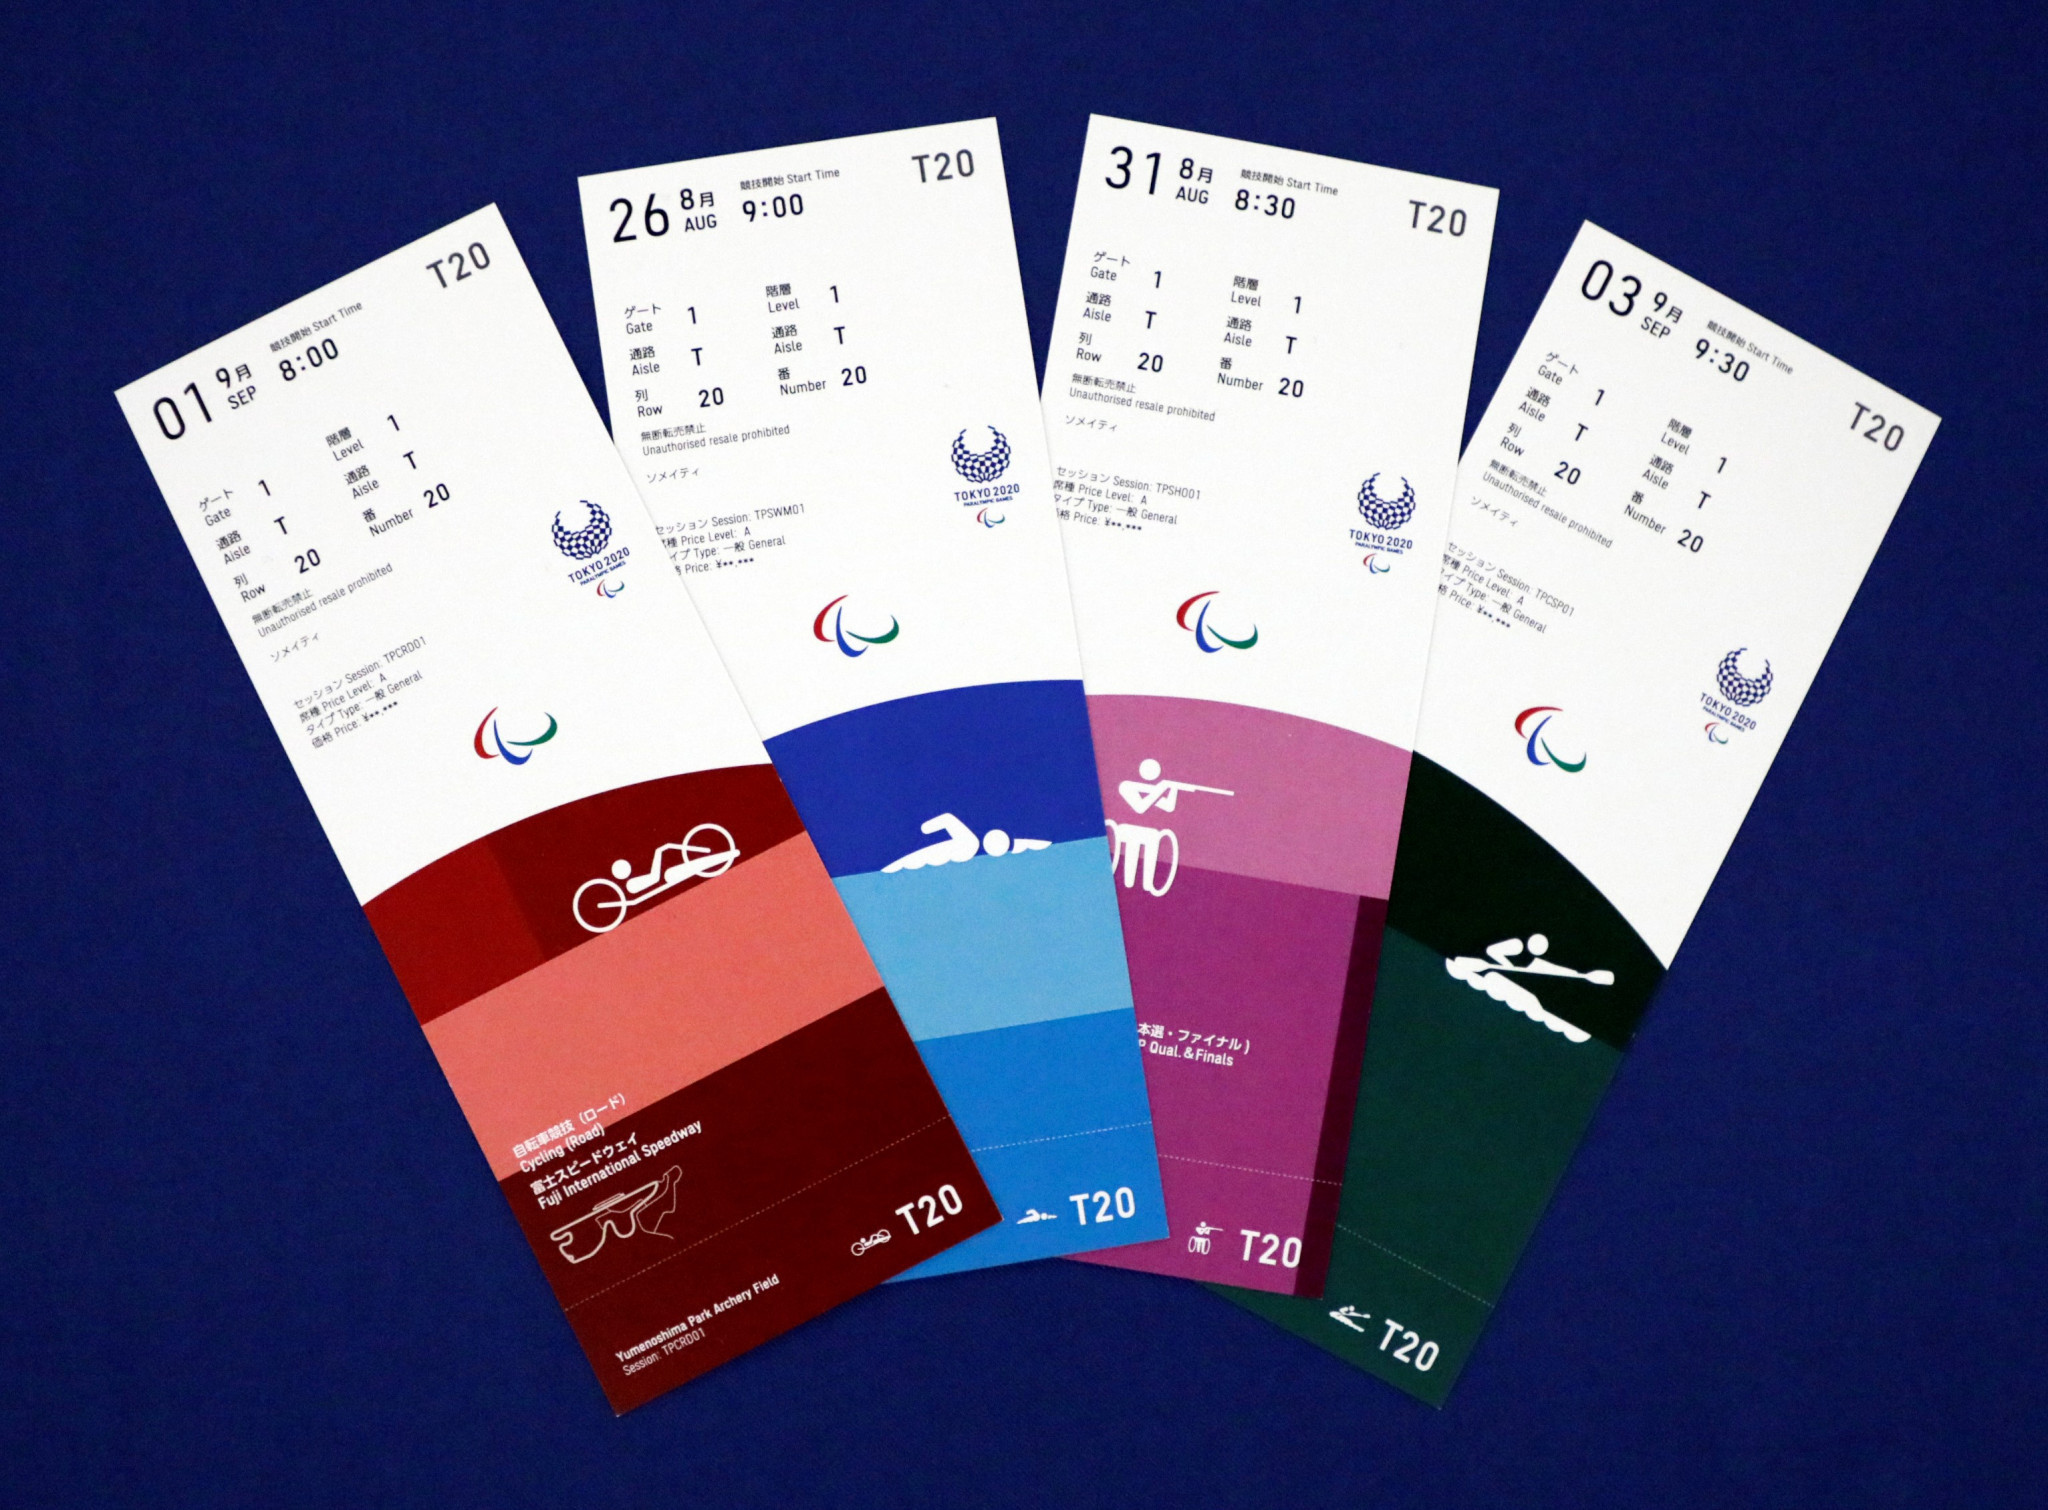 The Paralympic tickets unveiled today by organisers ©Tokyo 2020